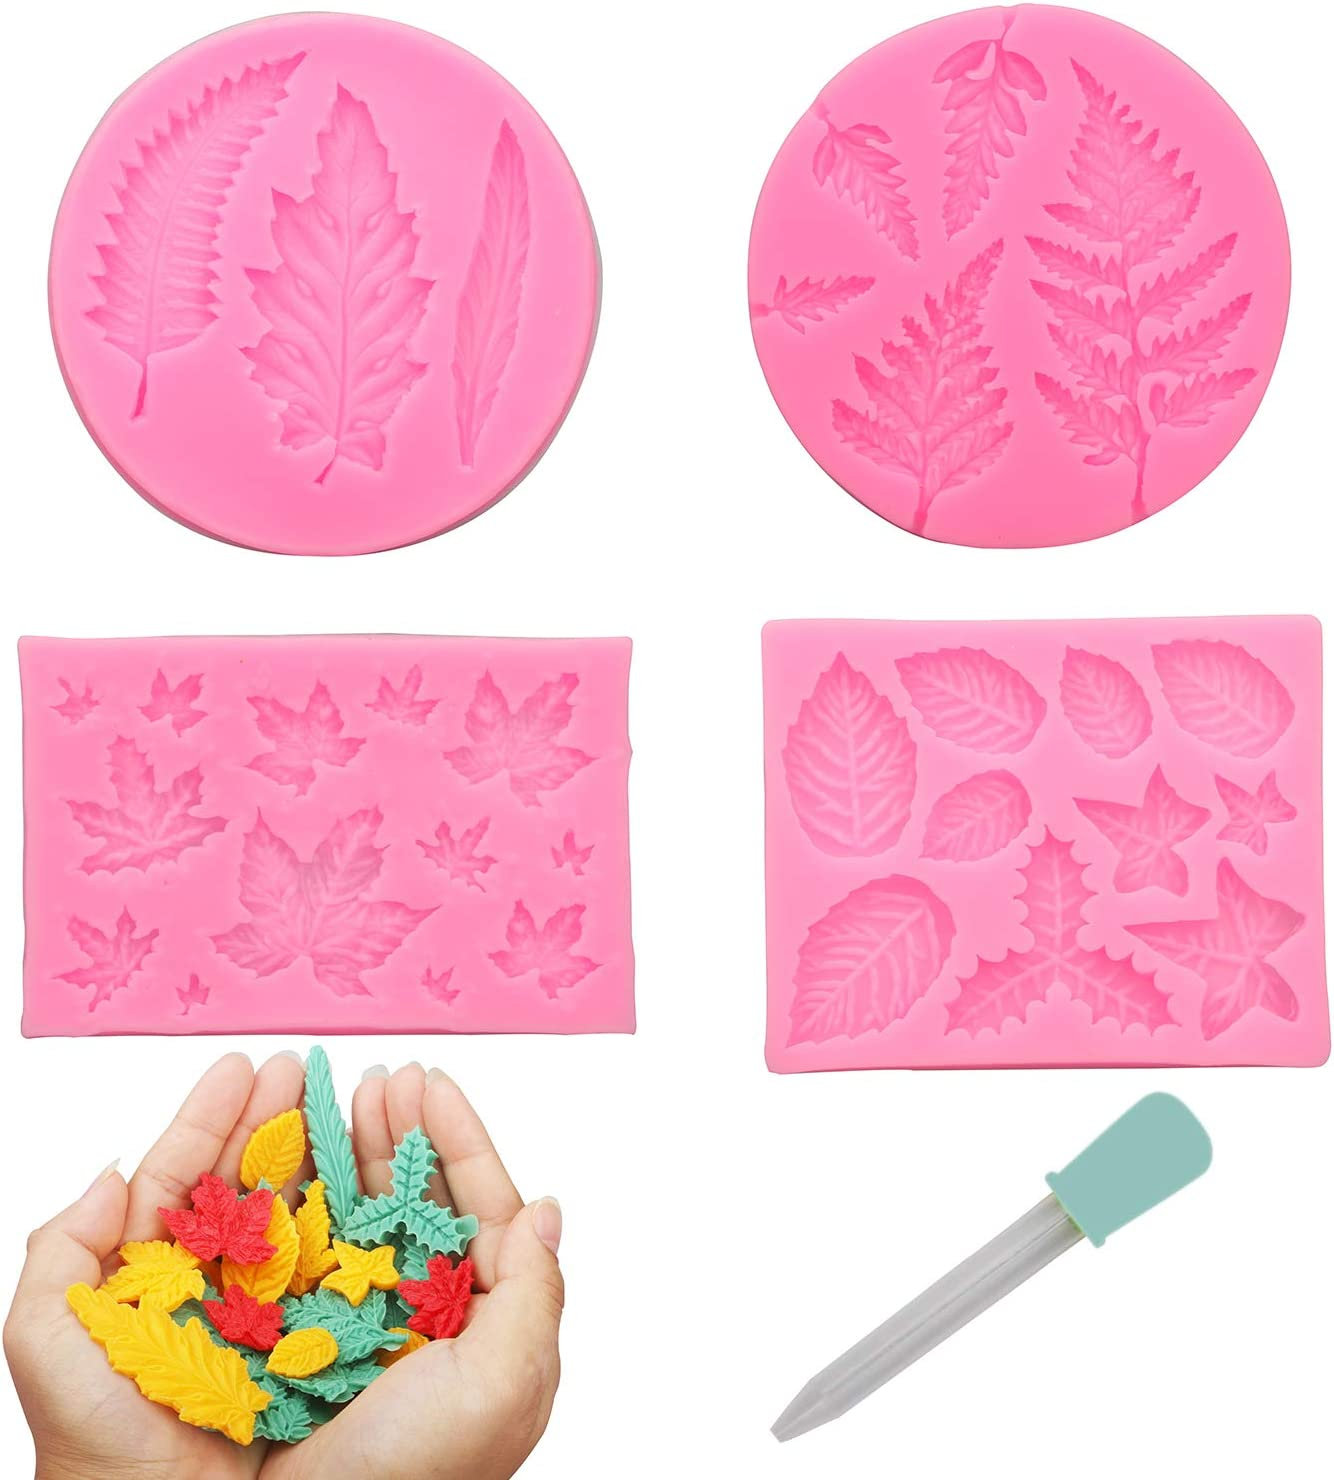 MILIVIXAY 4pcs/set Leaf Molds,Maple Leaves Jelly Mold, Fern Leaves Silicone Molds for Fondant, Soap Embed Molds, Wax Embeds,clay Mold, Wax Melts Molds,candy Mold for Cake Cupcake Topper Decorations .